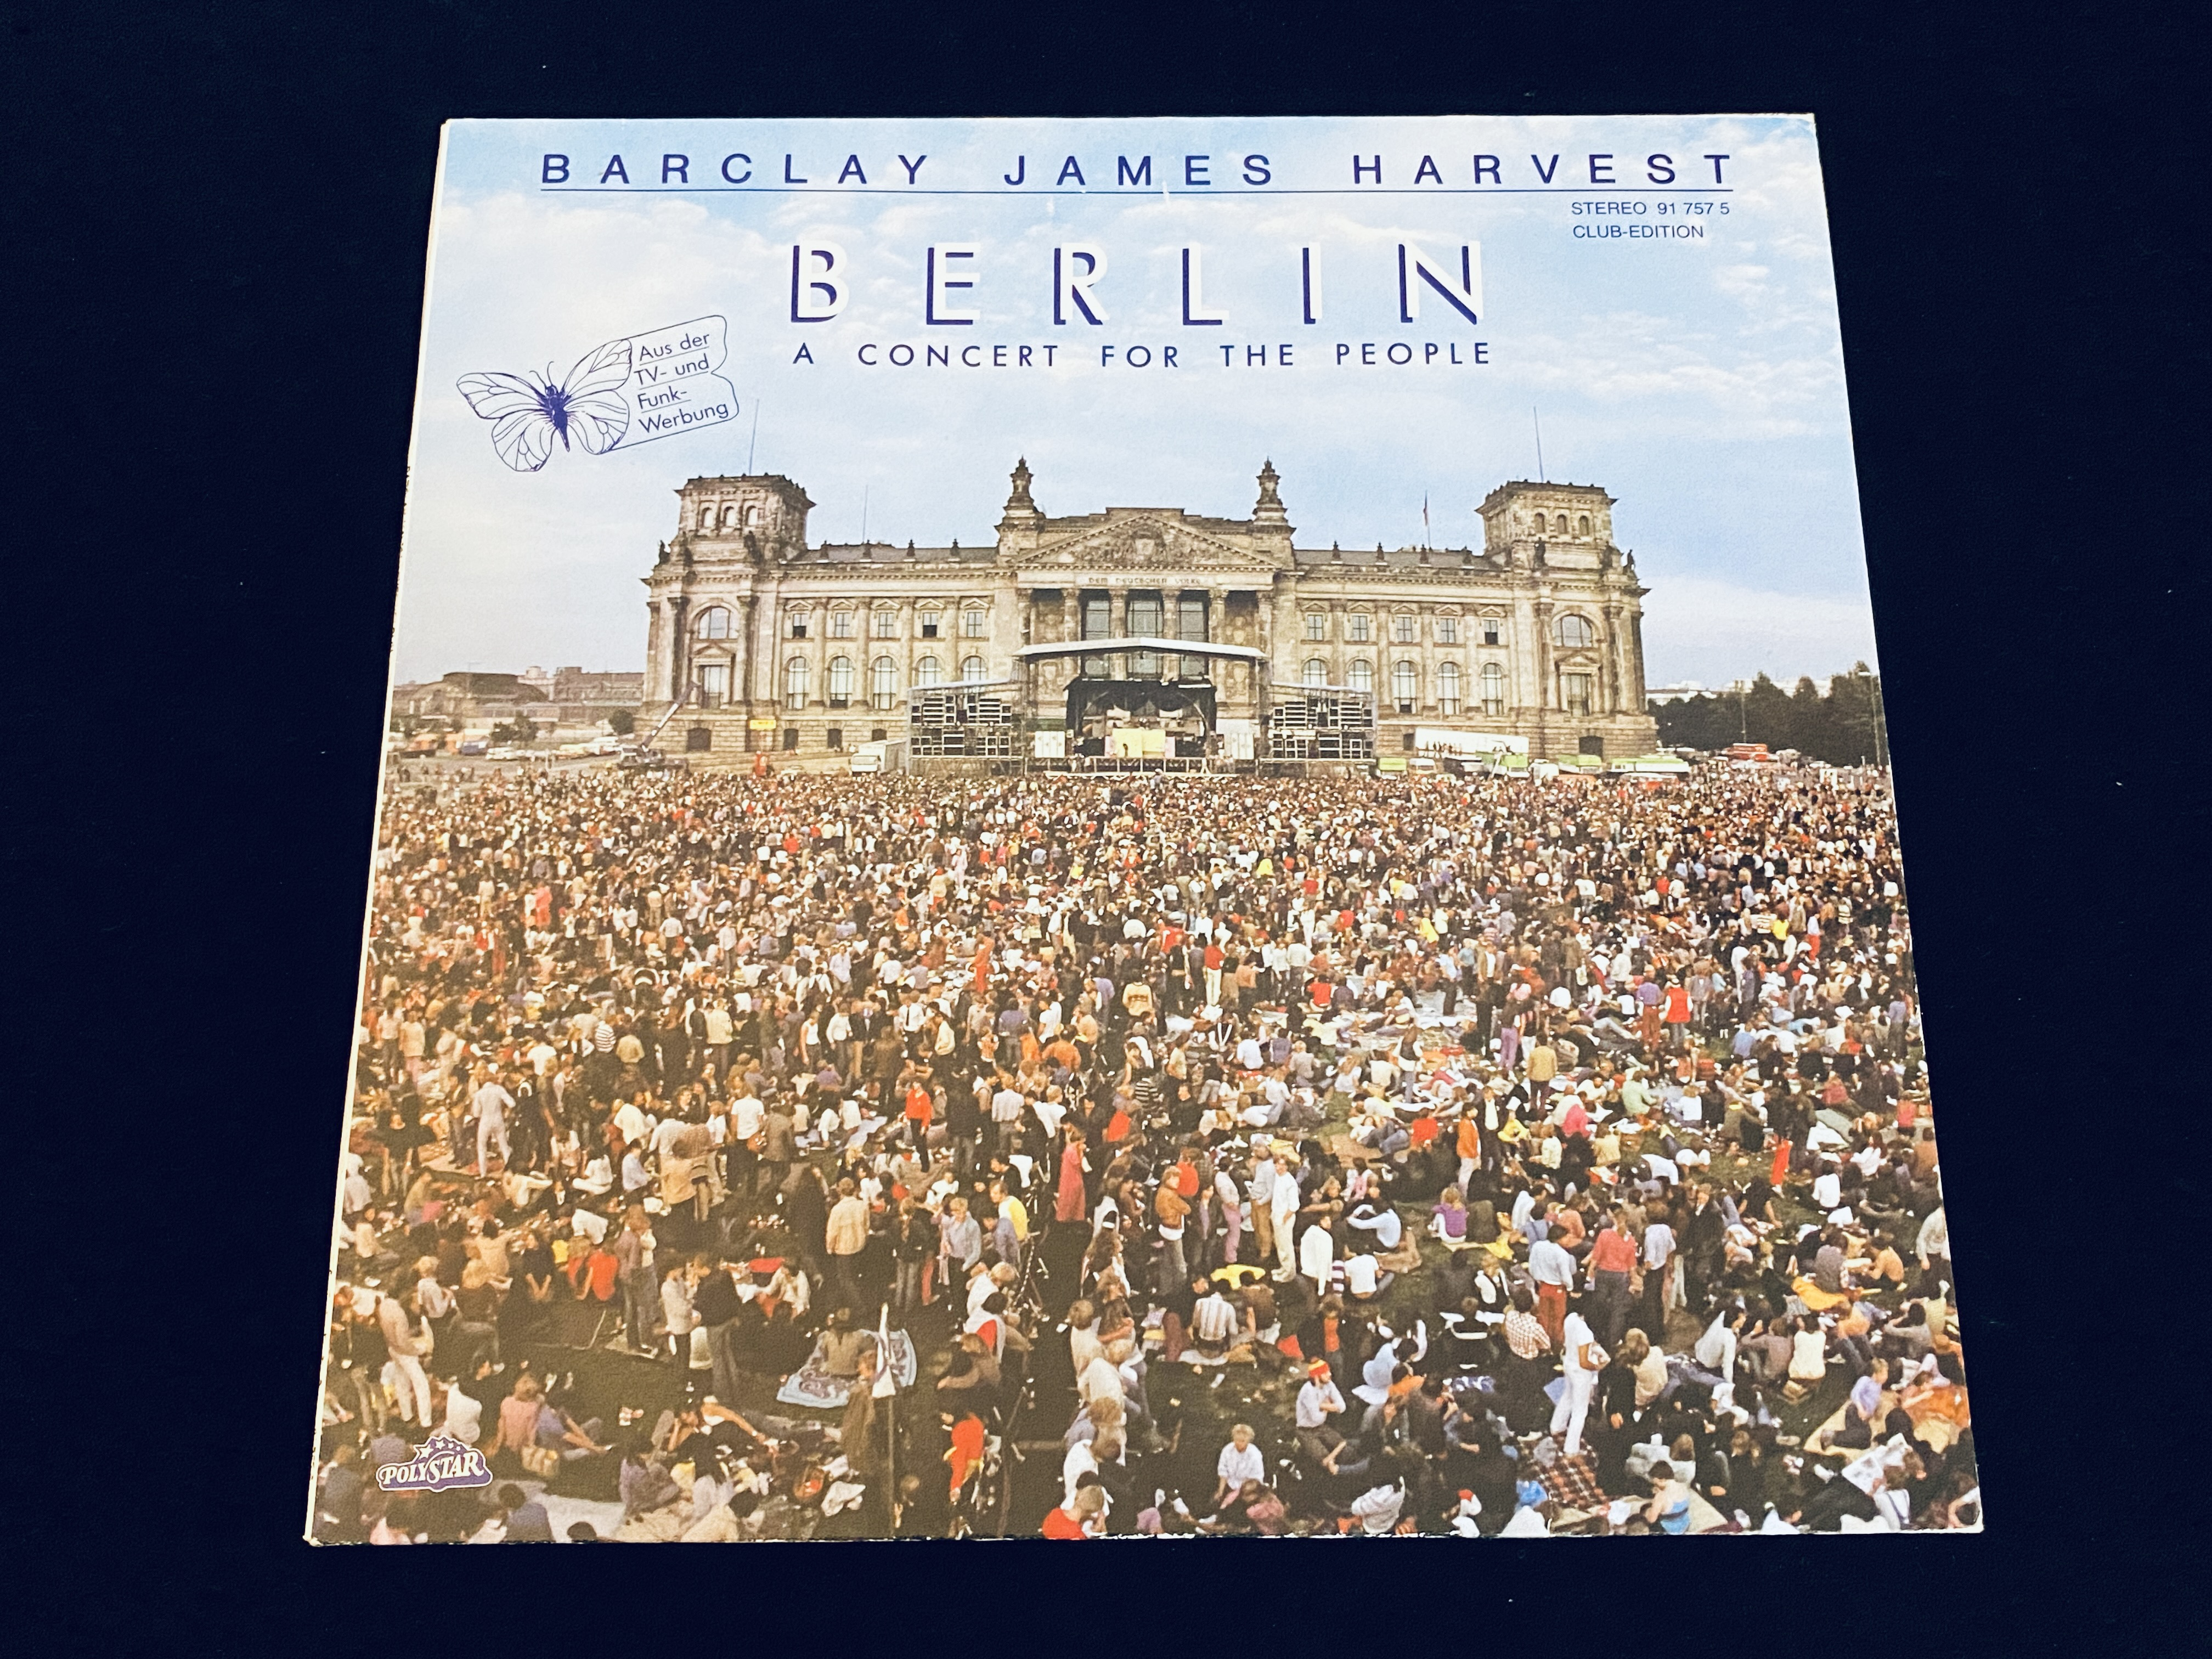 Barclay James Harvest - Berlin - A Concert for the People (Club Edition, DE, 1982)